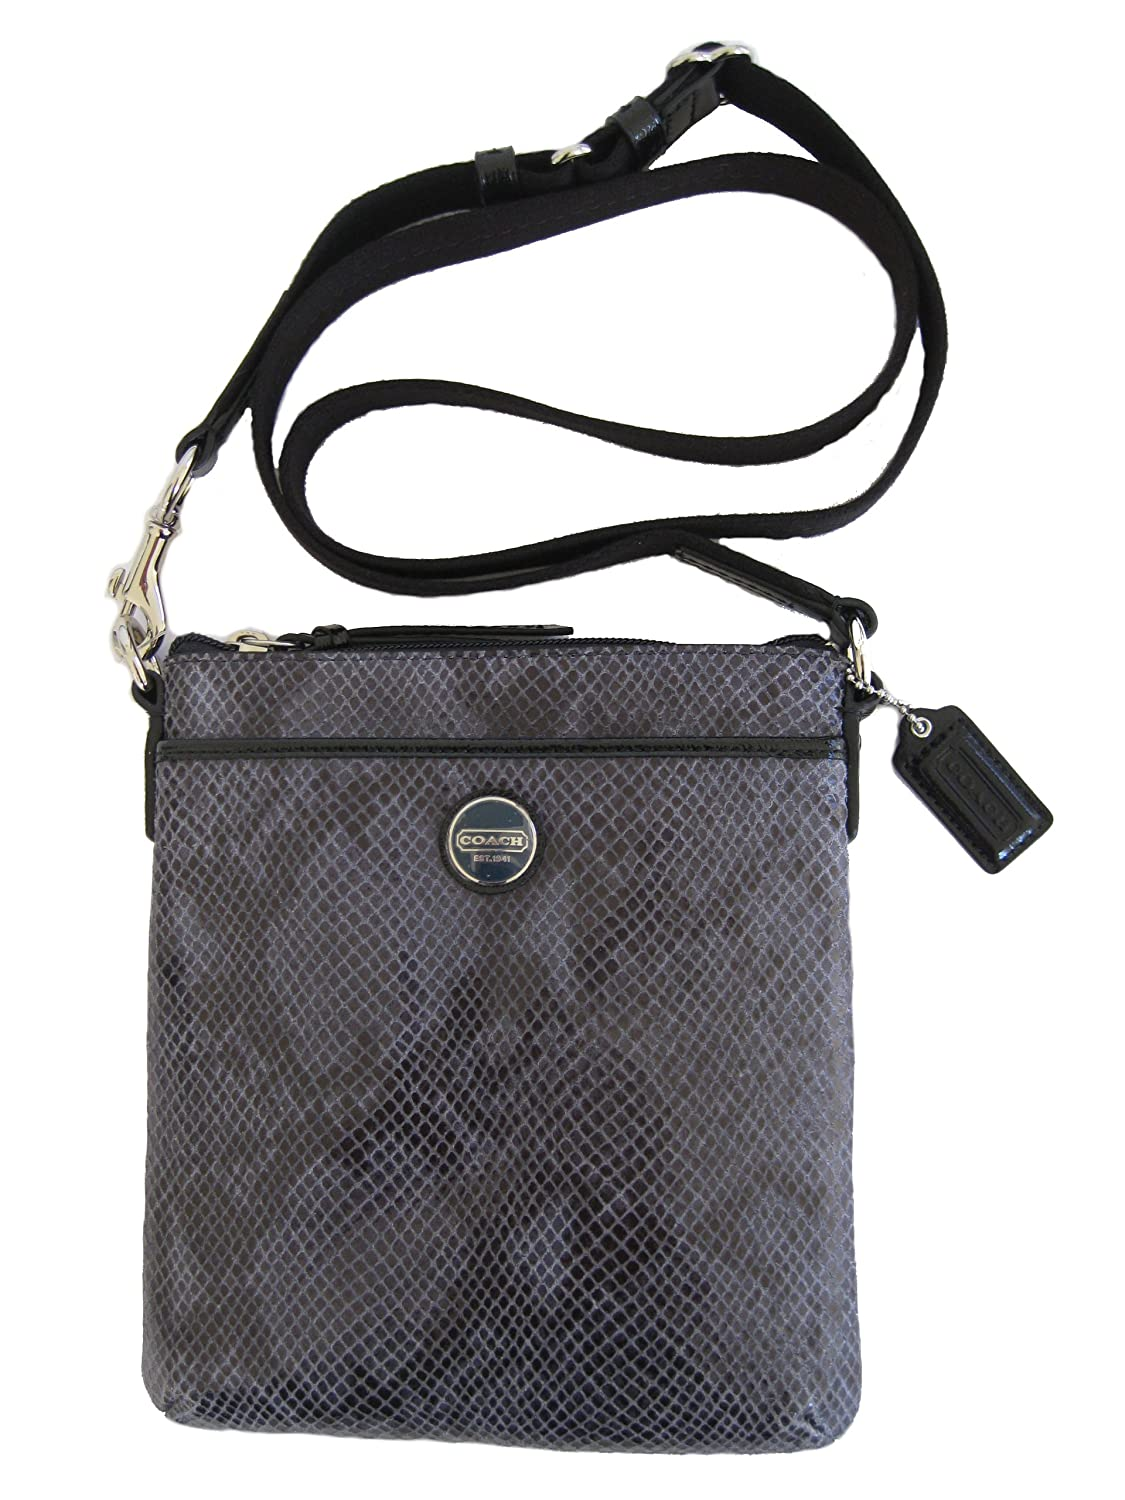 COACH Snake Skin Embossed Exotic Swingpack in SILVER / BLACK 50116